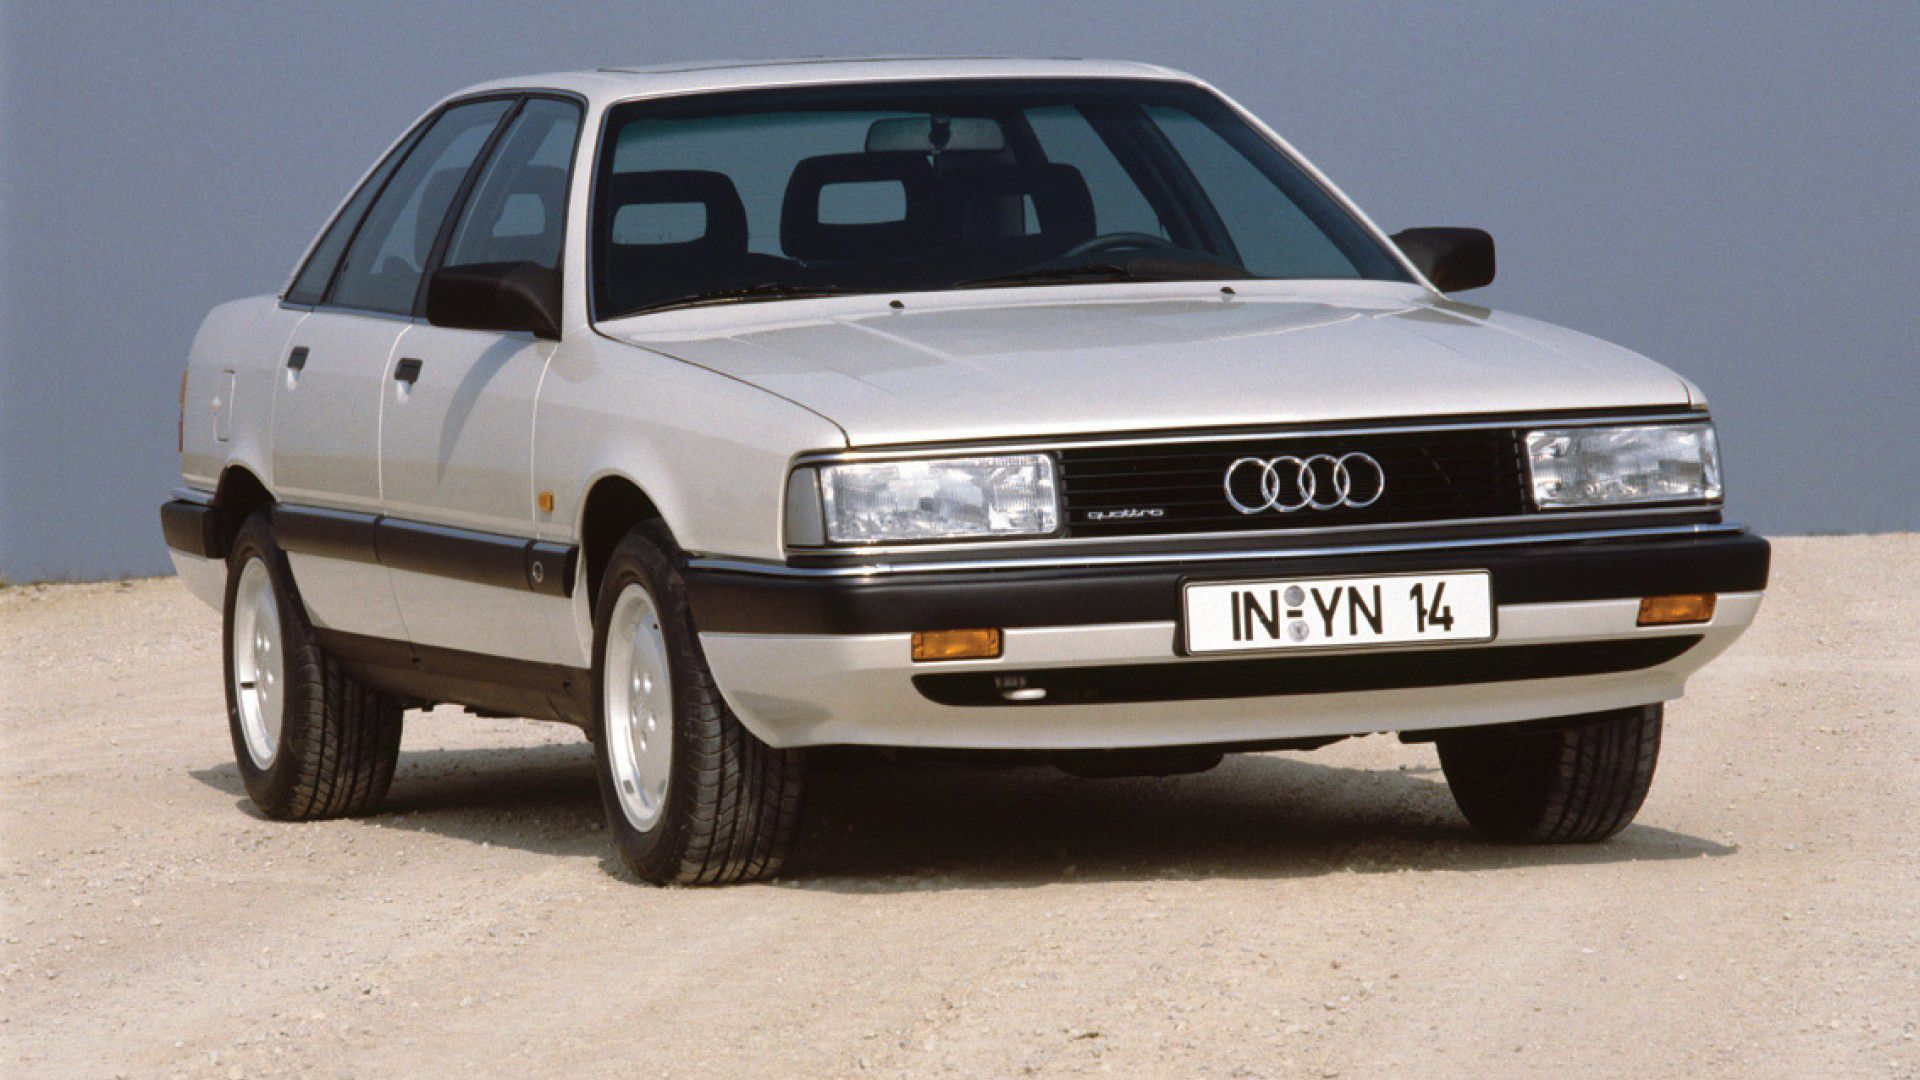 Audi 200 5T (1979 to 1984)